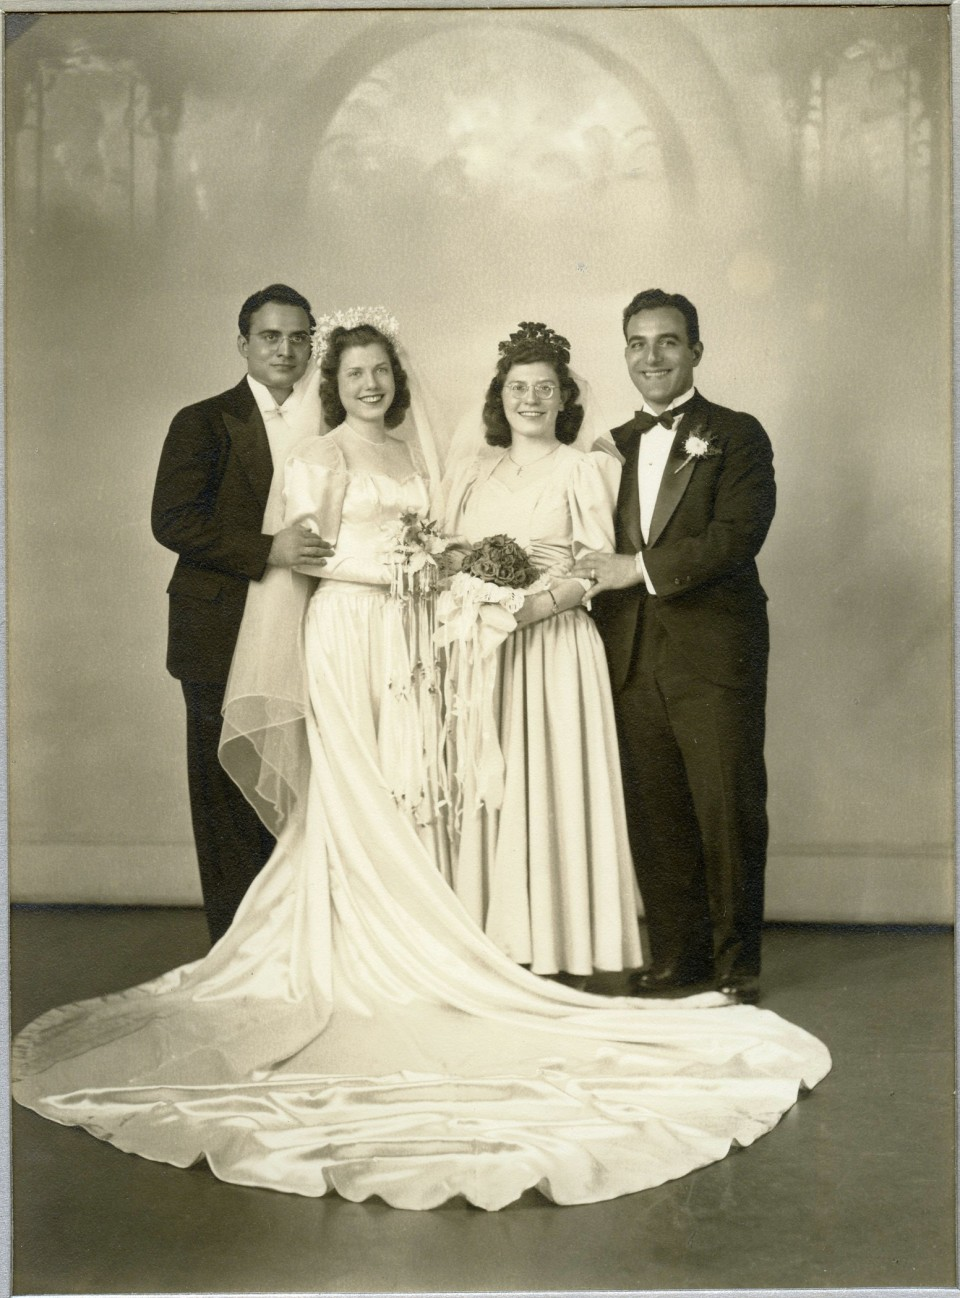 My Paternal Nonna Filomena Cornacchia on her Wedding Day in 1942.  Also in the photo are Antonio Maringola, Virginia Puzzo, and Alfredo Maringola.  The Maringolas were from Corigliano Calabro, Calabria and the Cornacchia's from Monteleone di puglia/Mercogliano, avellino.